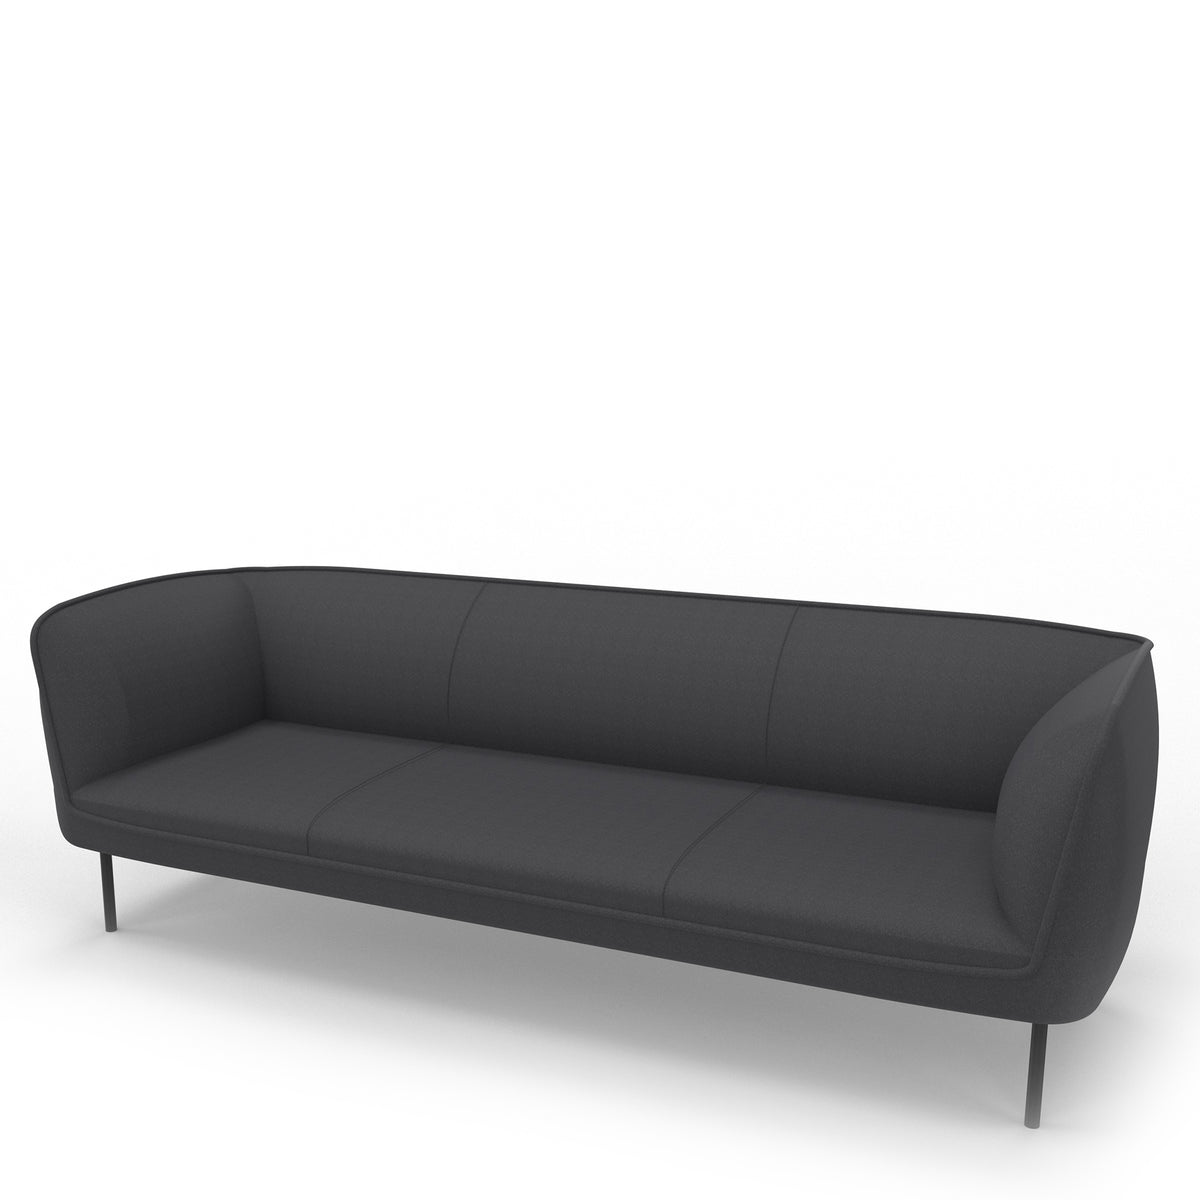 Edsbyn Gather 3 Seater Sofa Graphite